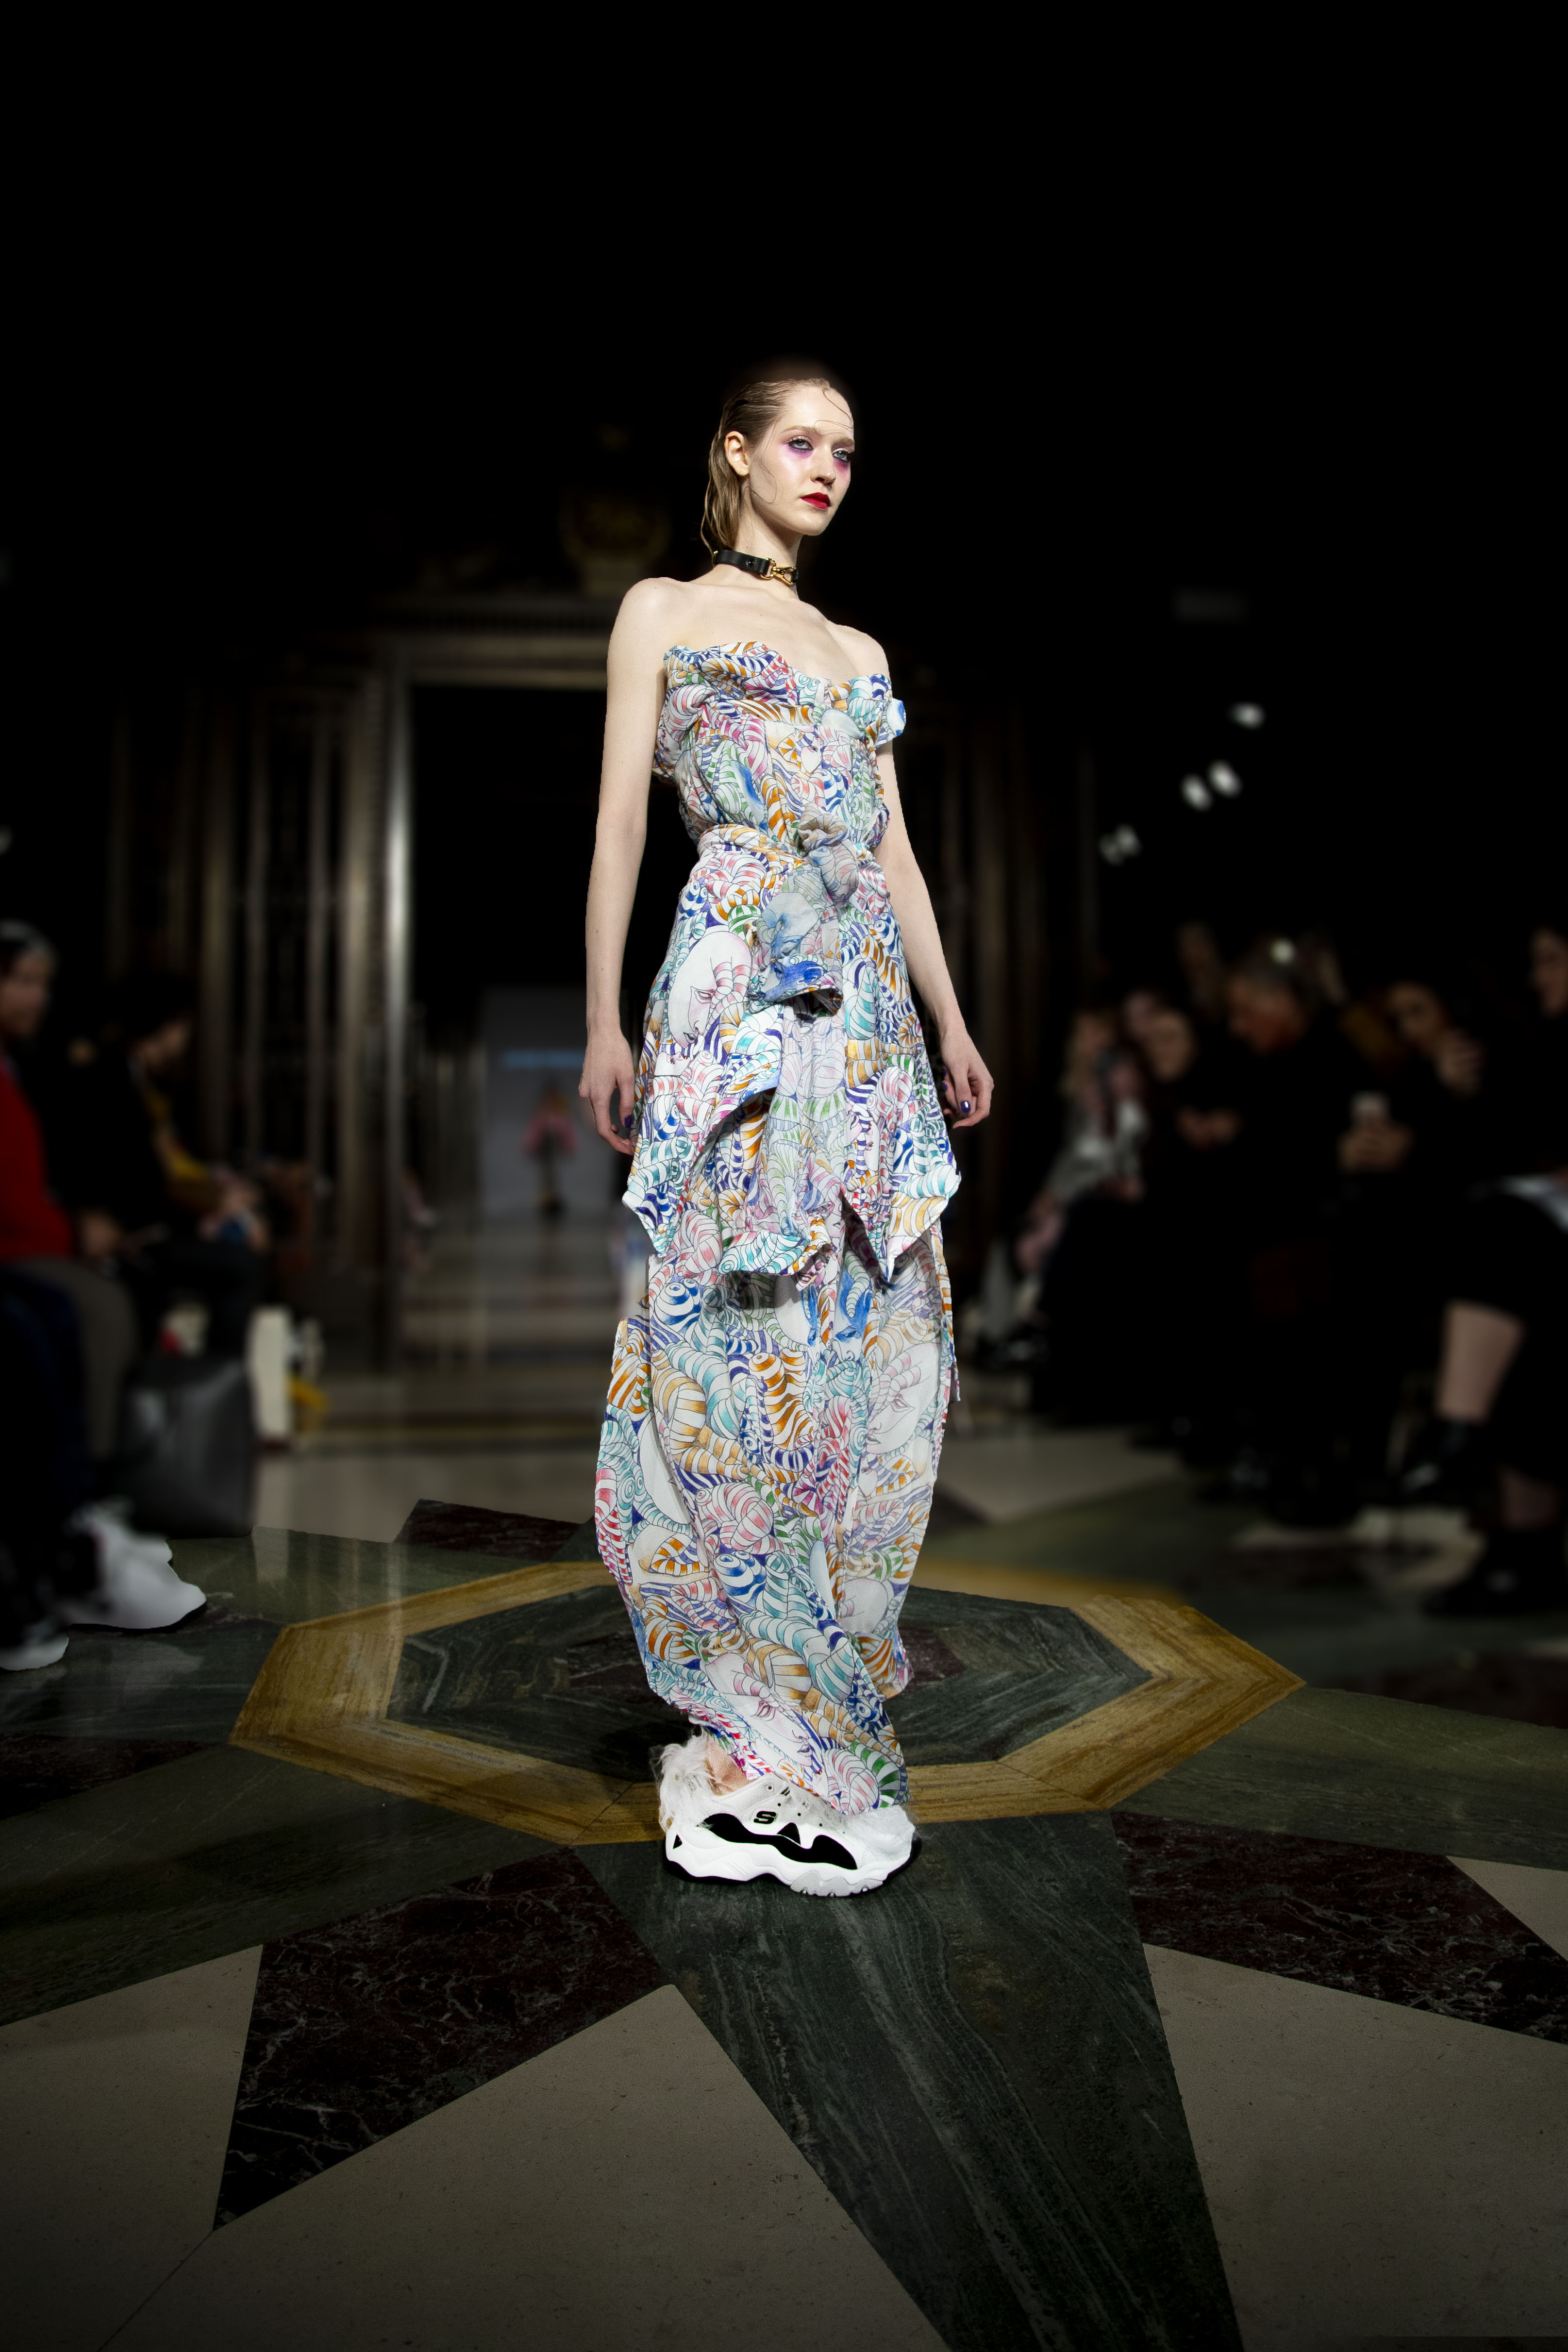 Skechers Hits Runway At London Fashion Week Digital Producer Magazine